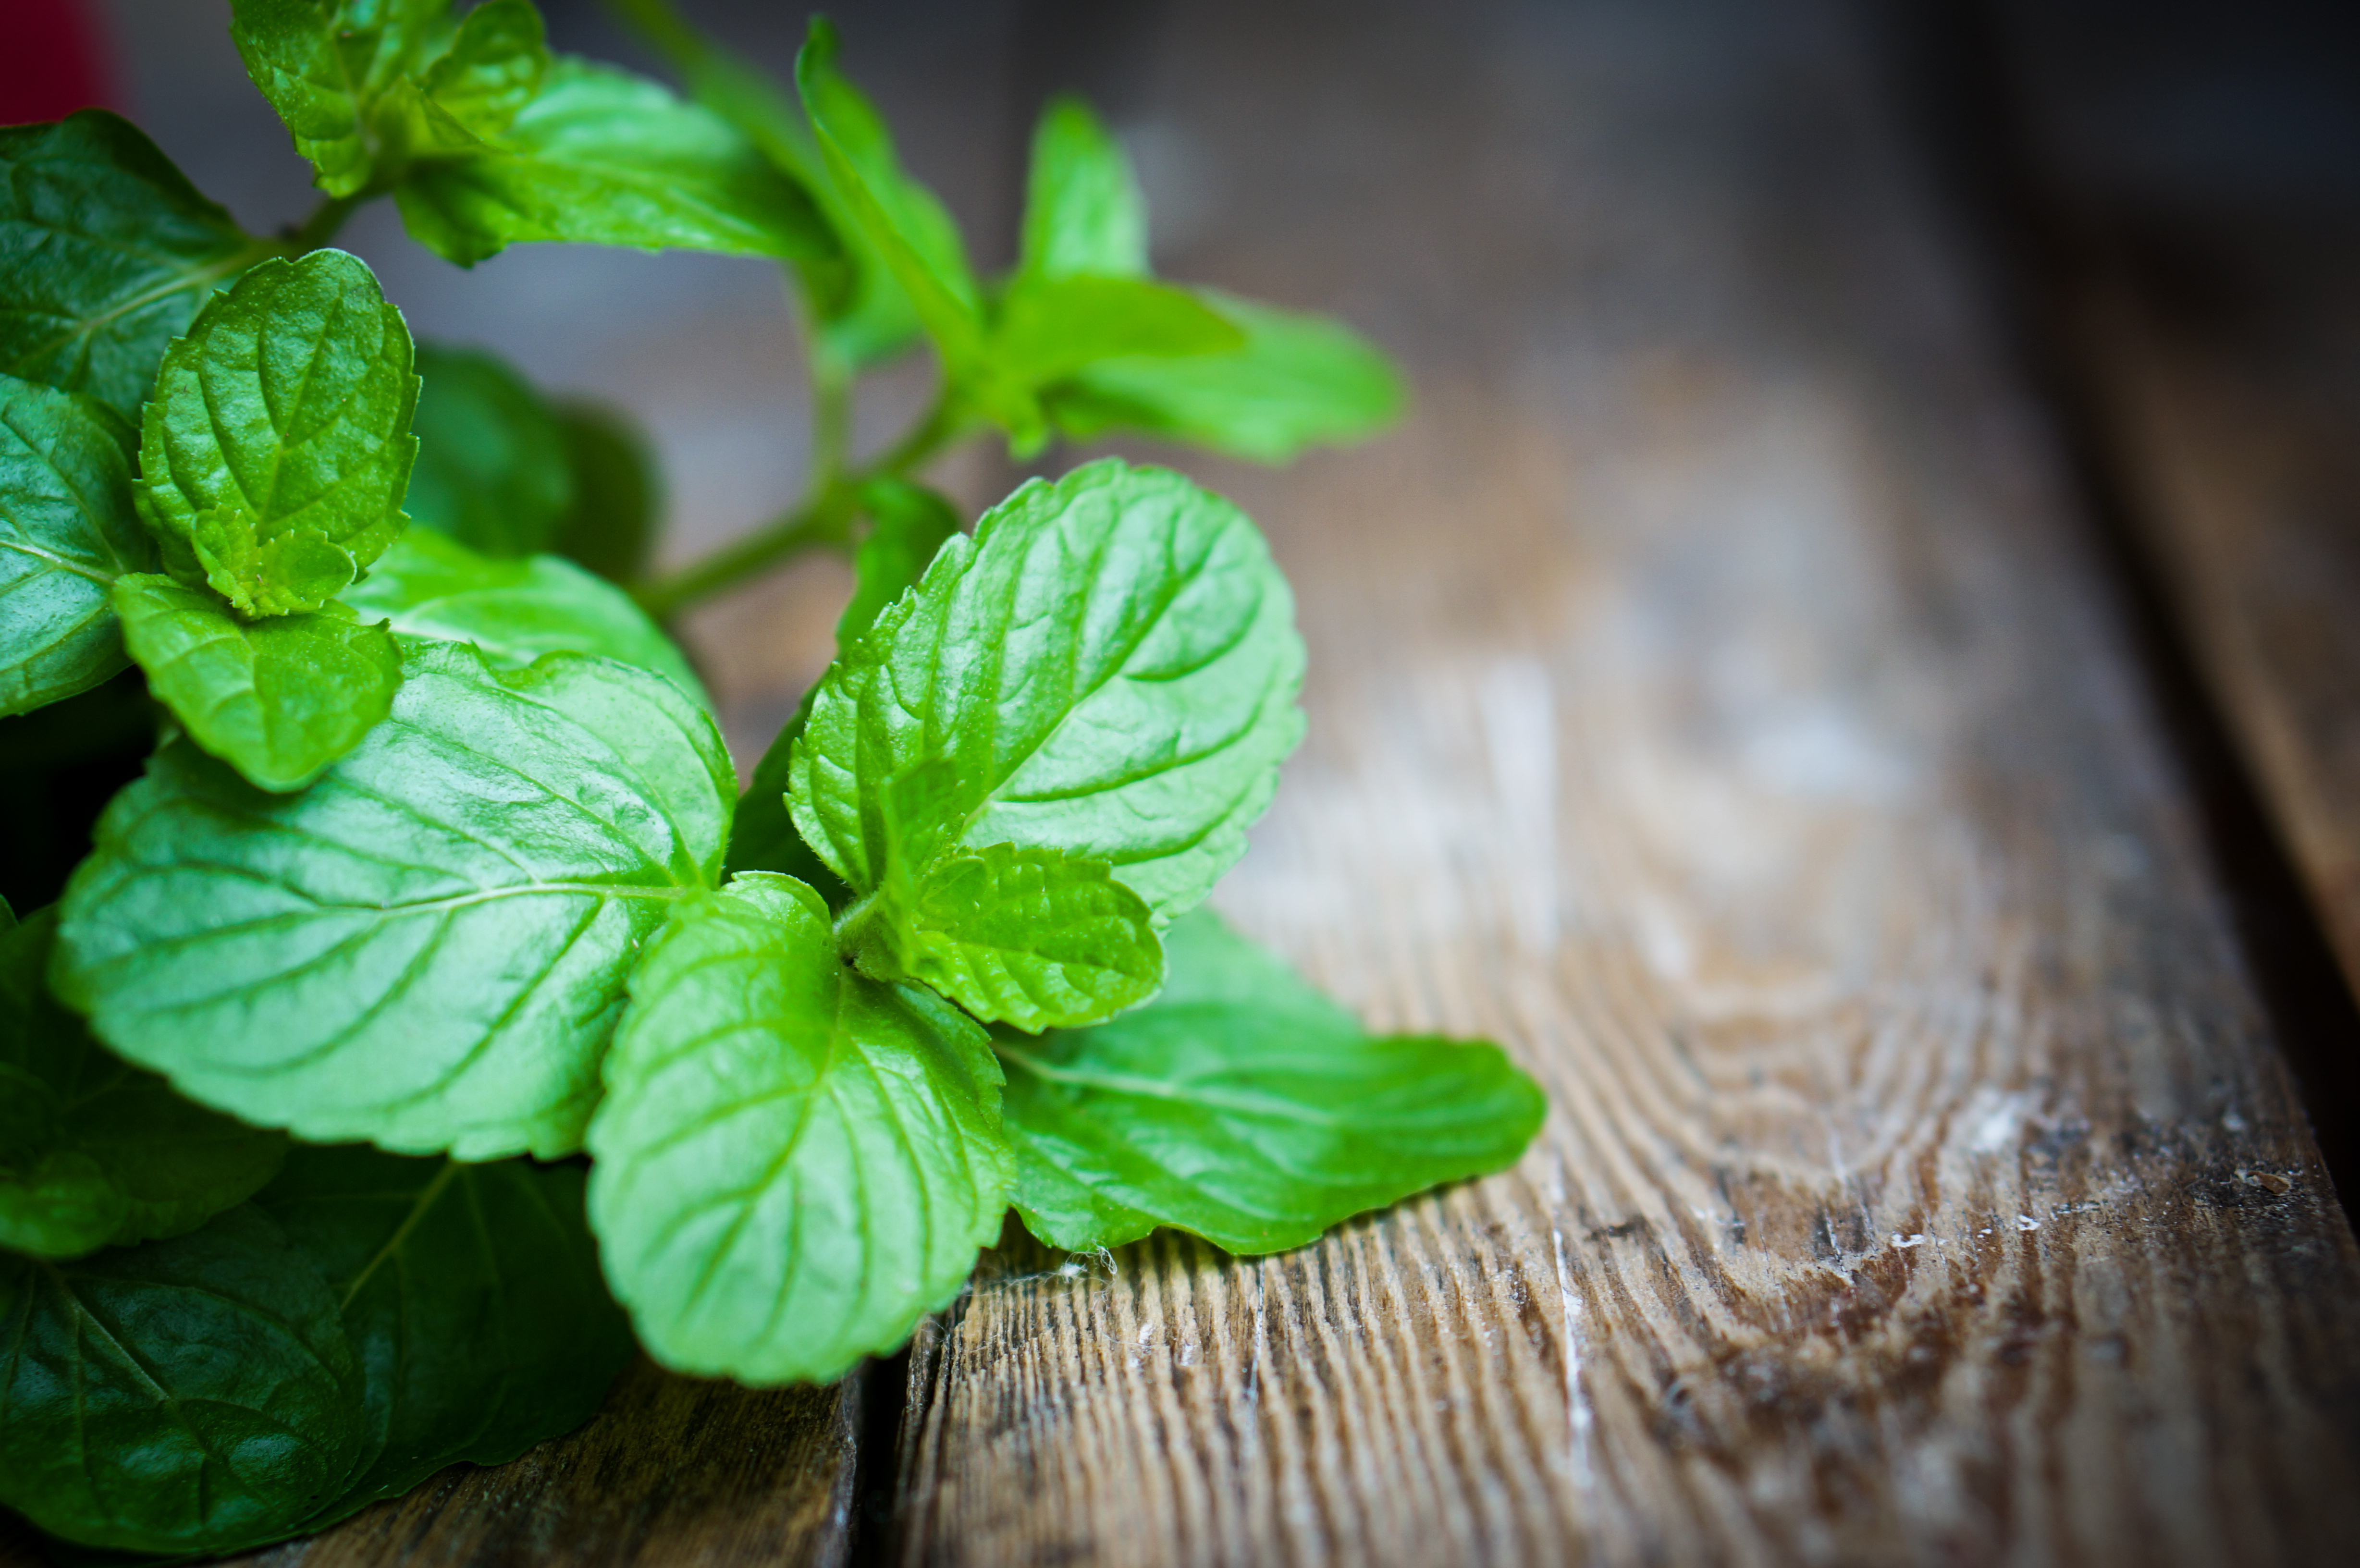 uses for peppermint essential oil, peppermint oil, peppermint plant, peppermint tea